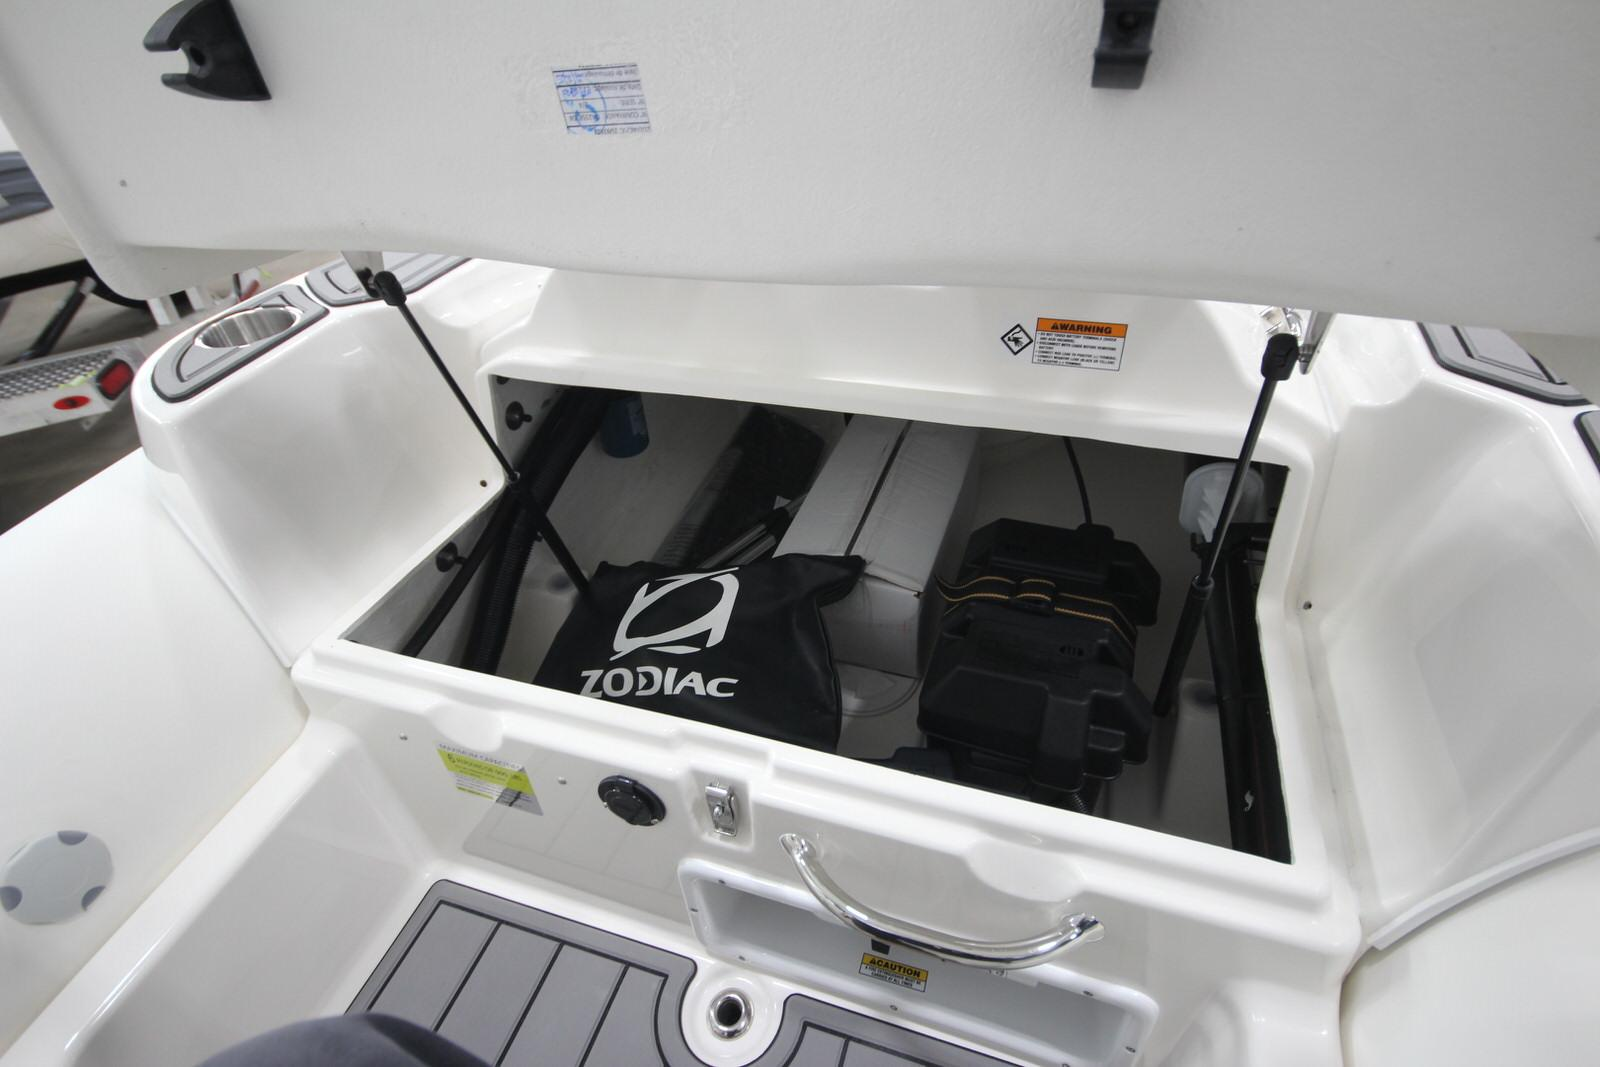 2022 Zodiac Yachtline 440 Deluxe NEO GL Edition 60hp On Order, Image 12